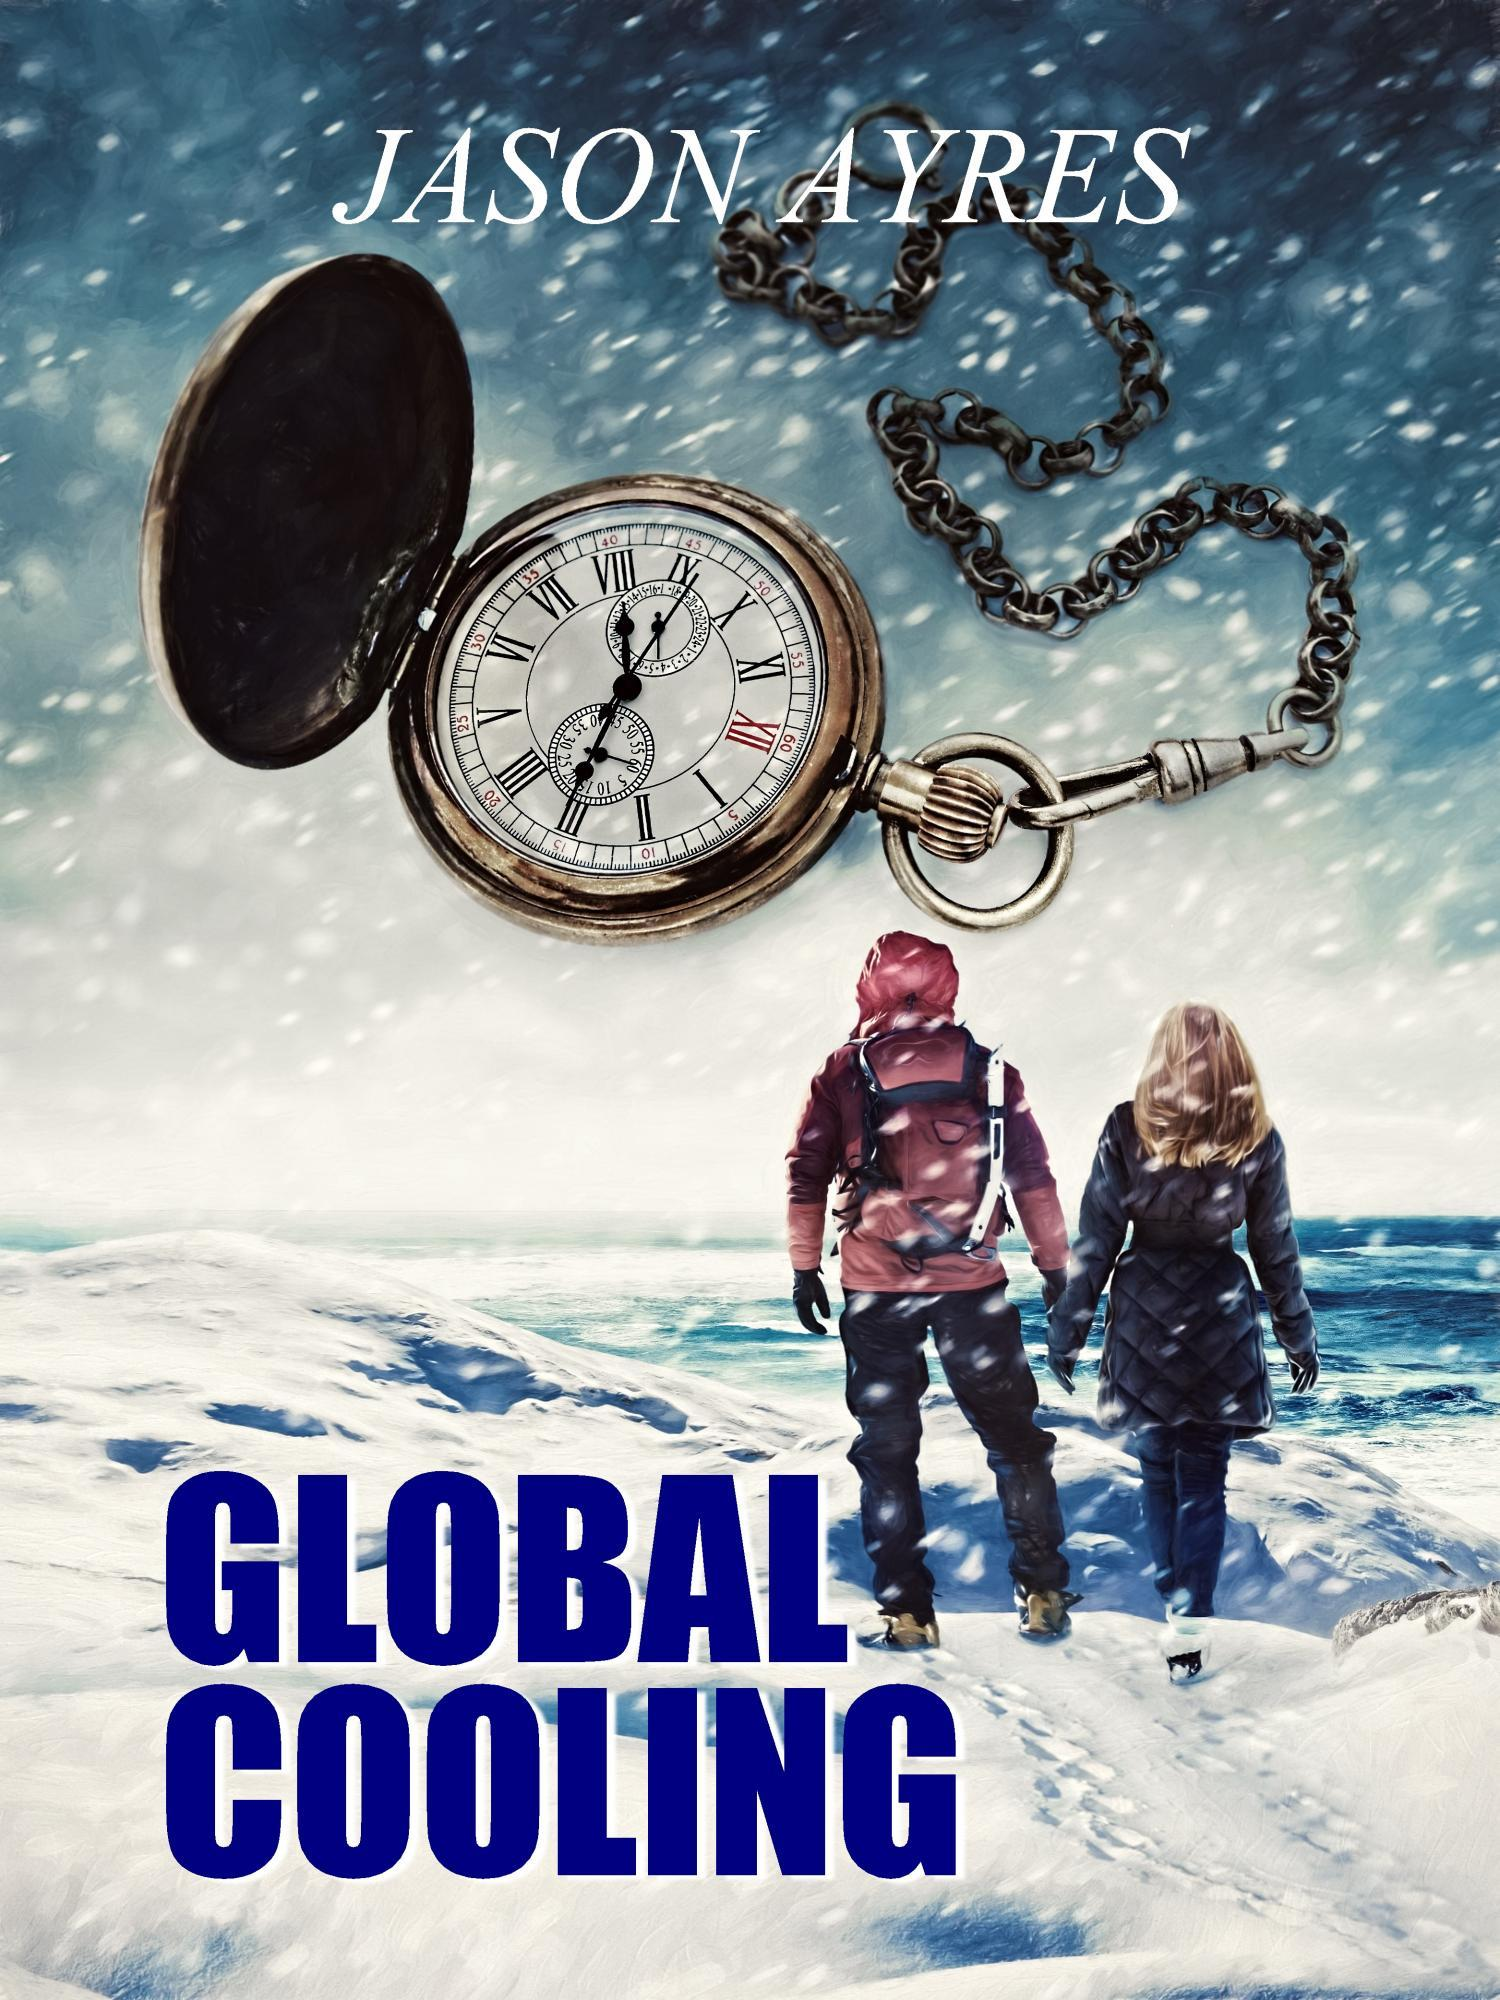 Global Cooling (The Time Bubble #2) Jason Ayres